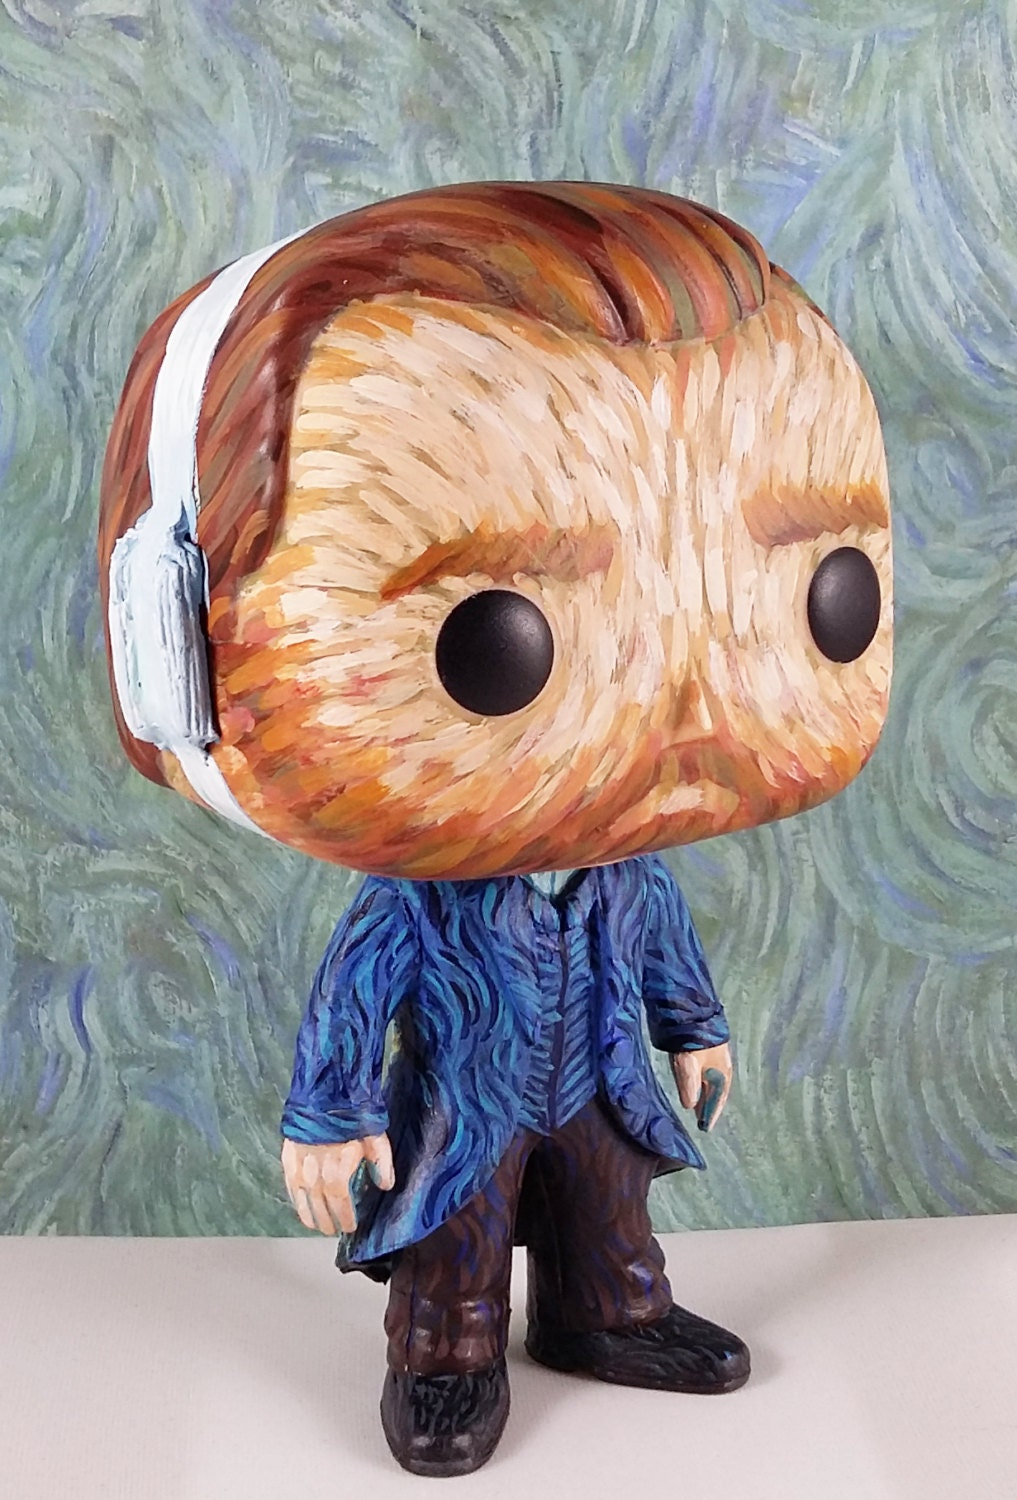 Vincent Van Gogh Custom Funko Pop Vinyl Figurine Art Toy With